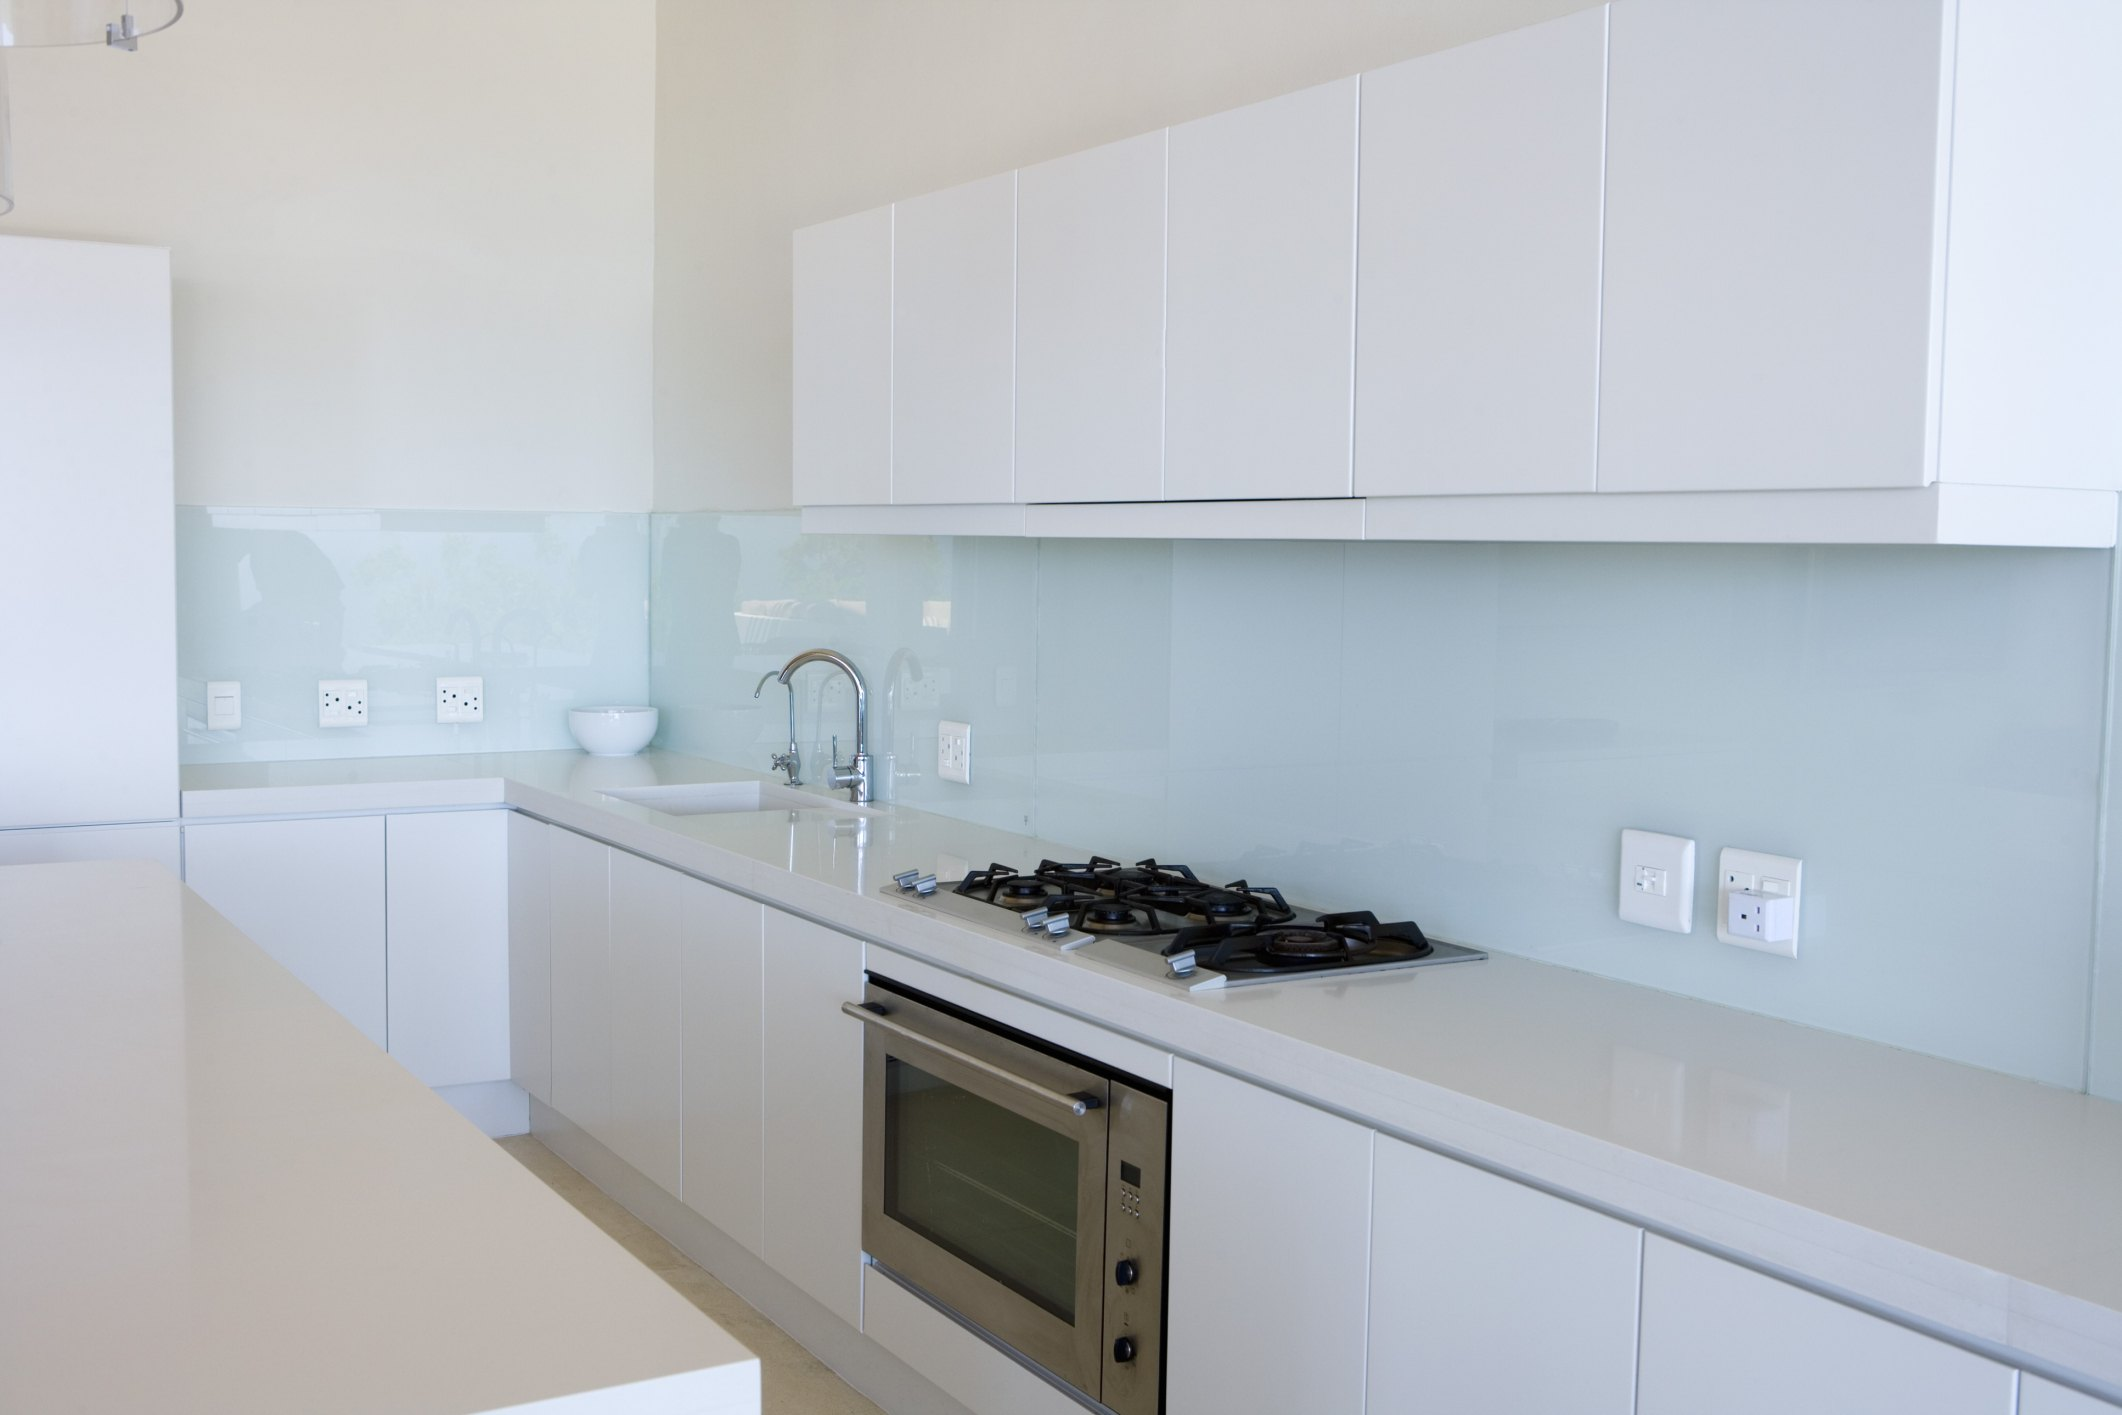 Is There Any Paint That Will Stick to Laminate Cabinets? | eHow